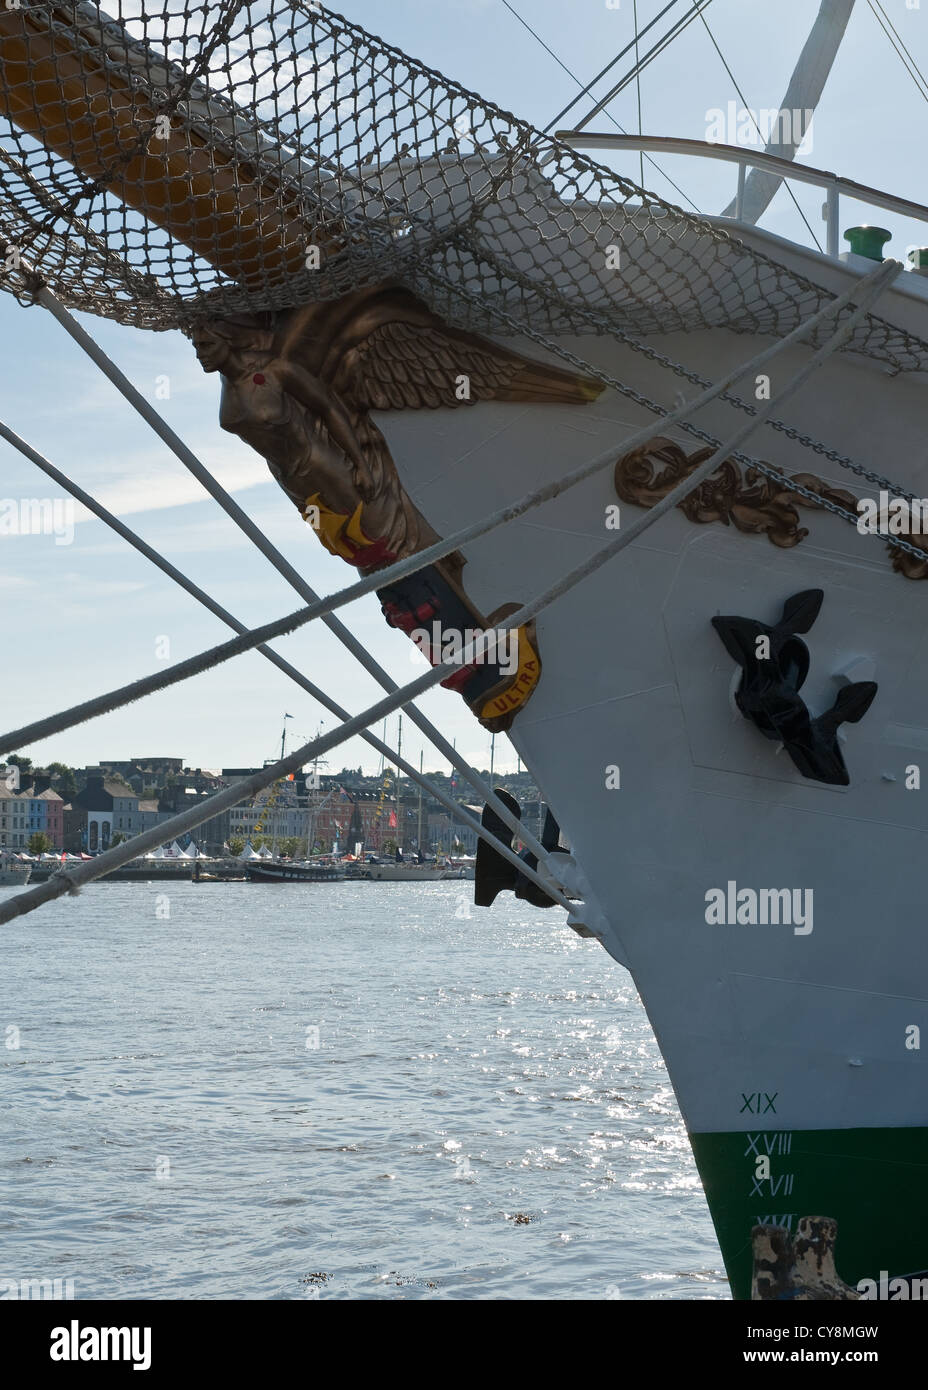 Figurehead of tall ship. Waterford, Ireland - Stock Image